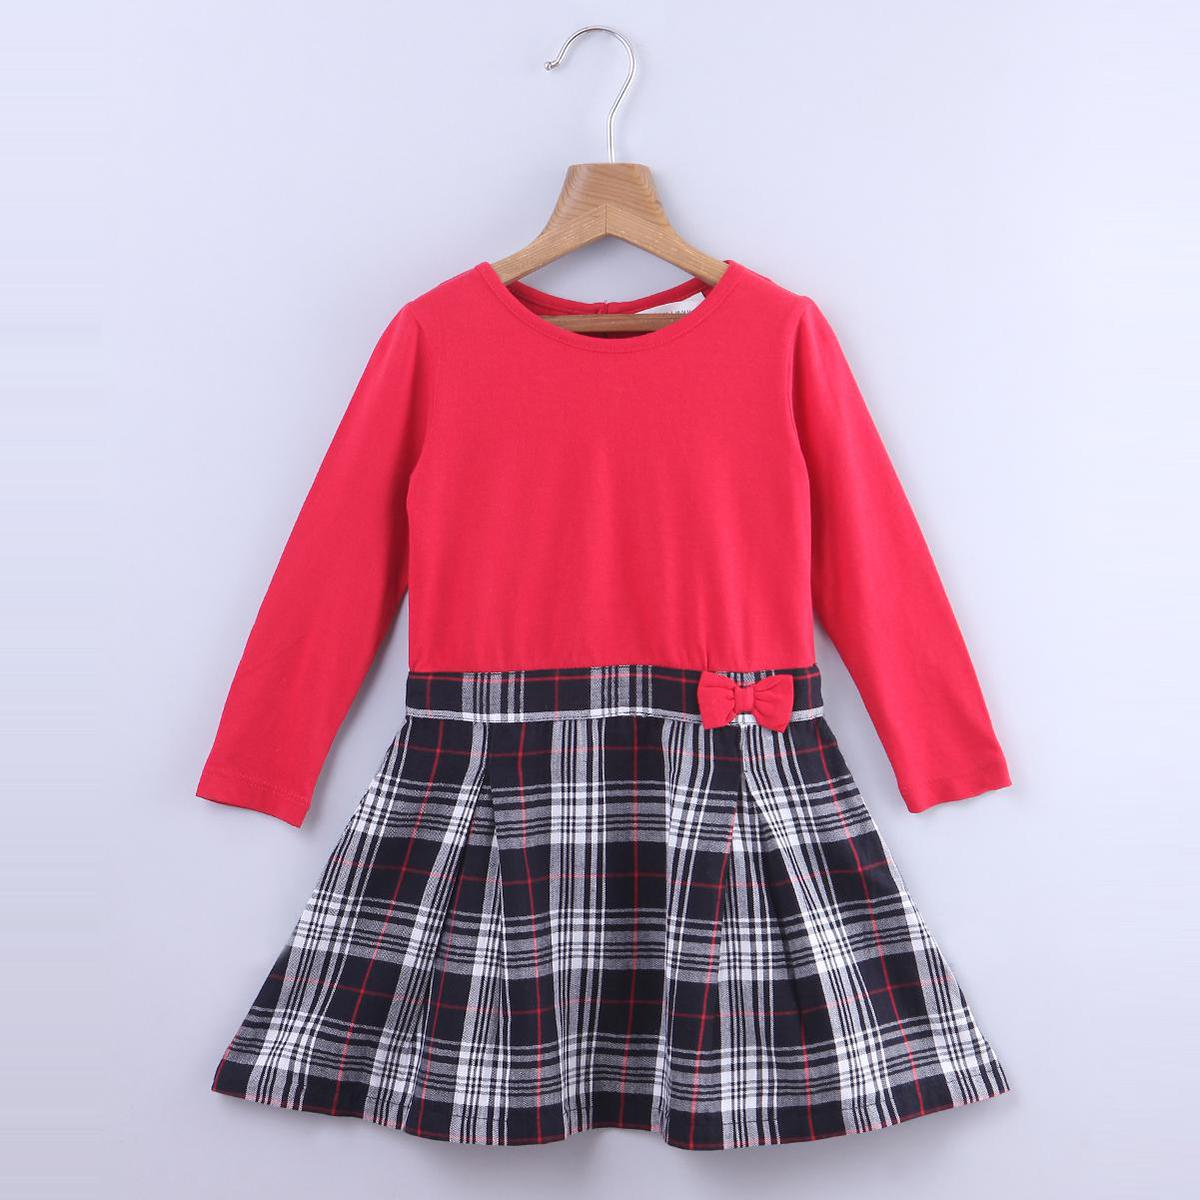 Beebay - Red Colored Pleated Mix-media Cotton Dress For Kids Girls